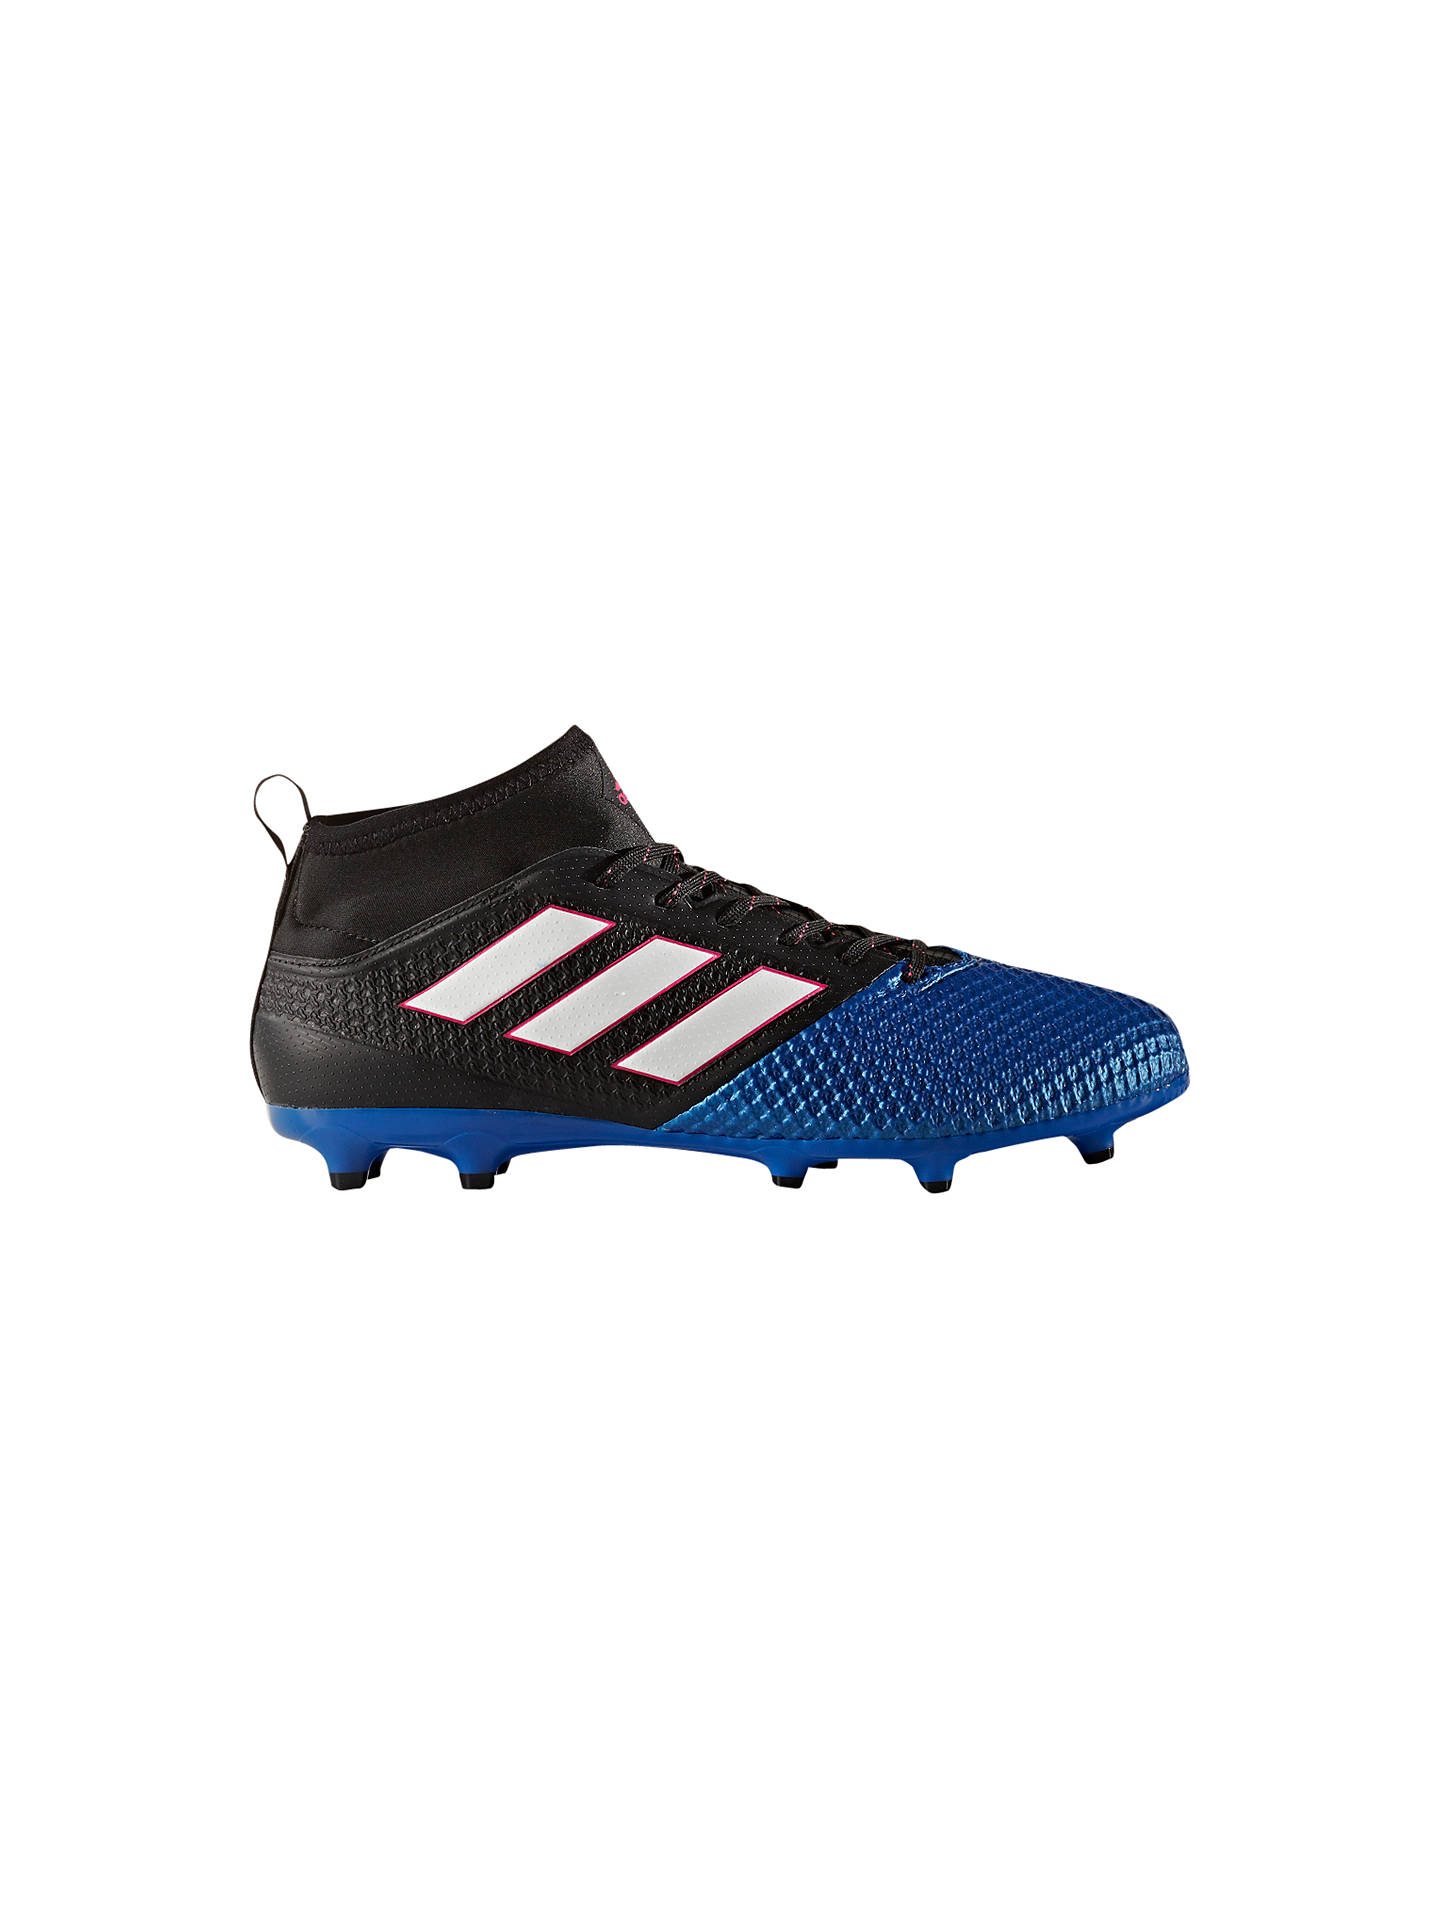 3e5444a6cb0f Buy Adidas Ace 17.3 Primemesh Men's Football Boots, Black/Blue, 7 Online at  ...